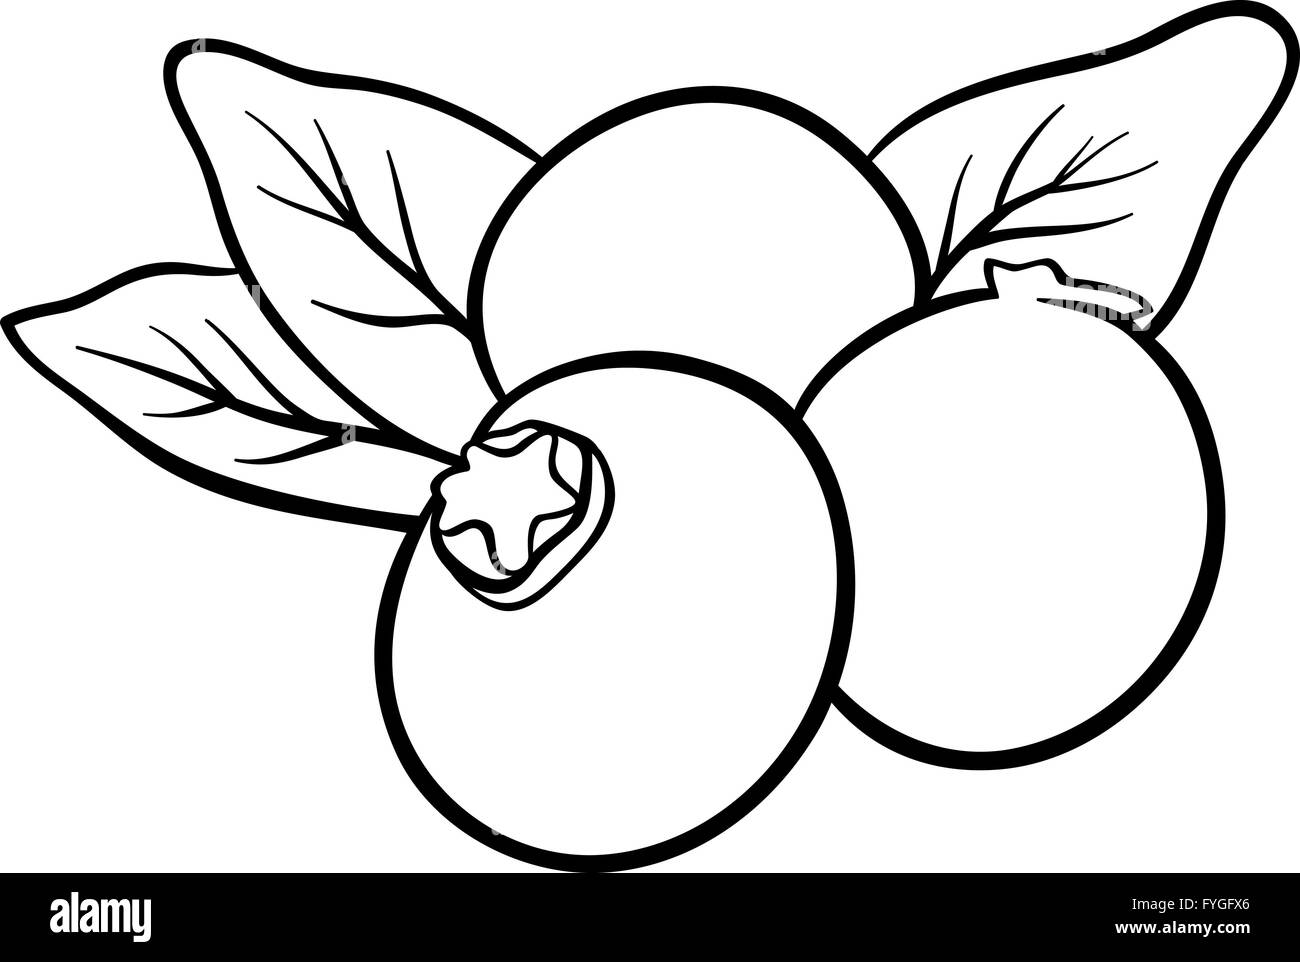 Blueberry Fruits For Coloring Book